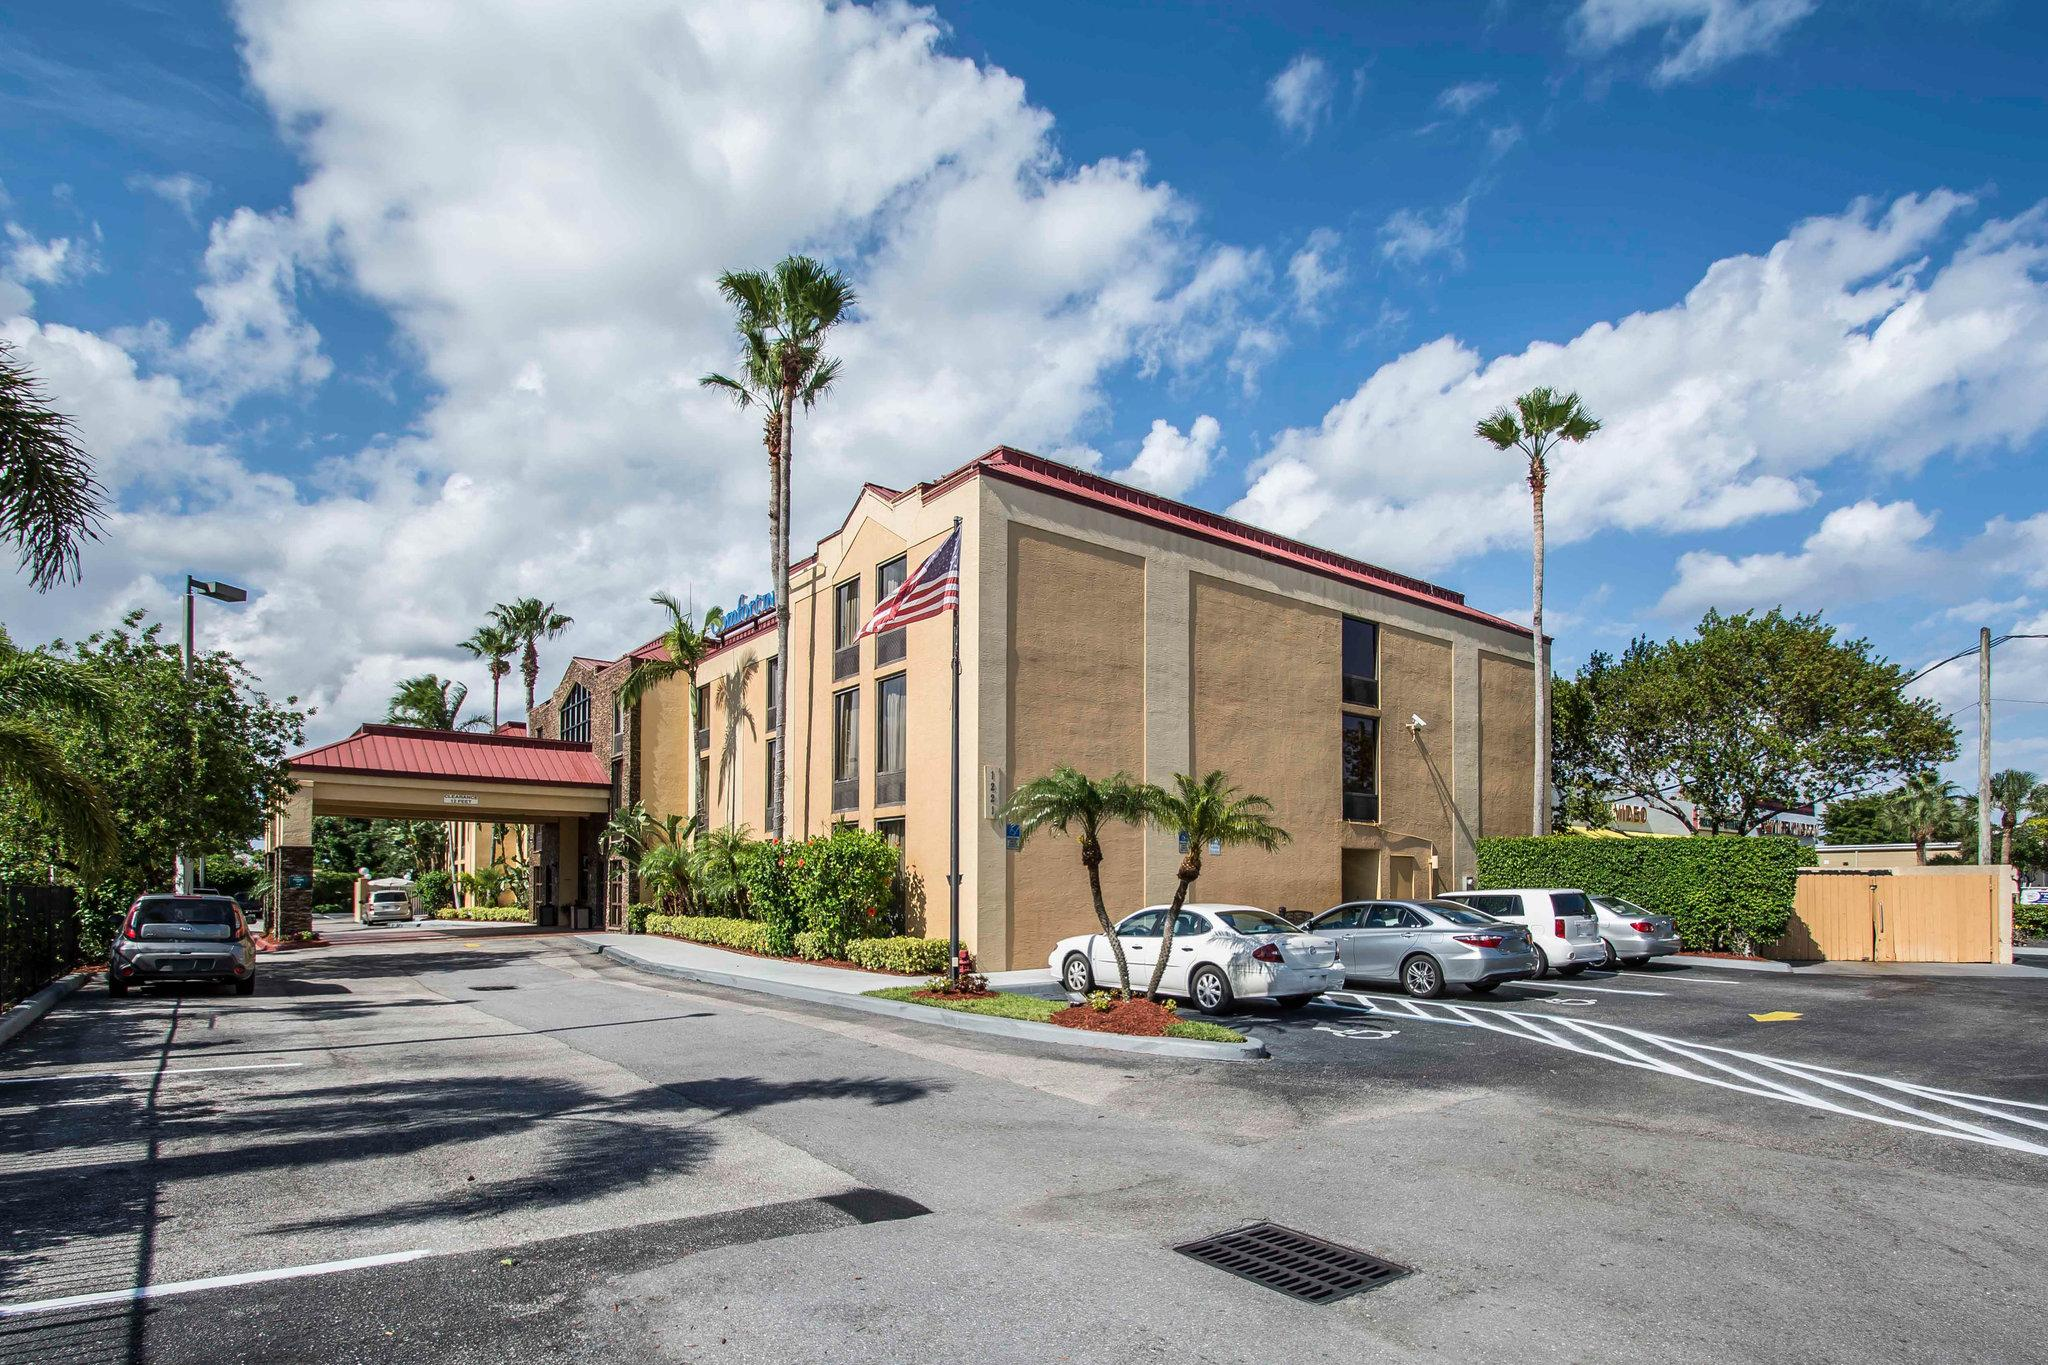 Comfort Inn & Suites Lantana - West Palm Beach South